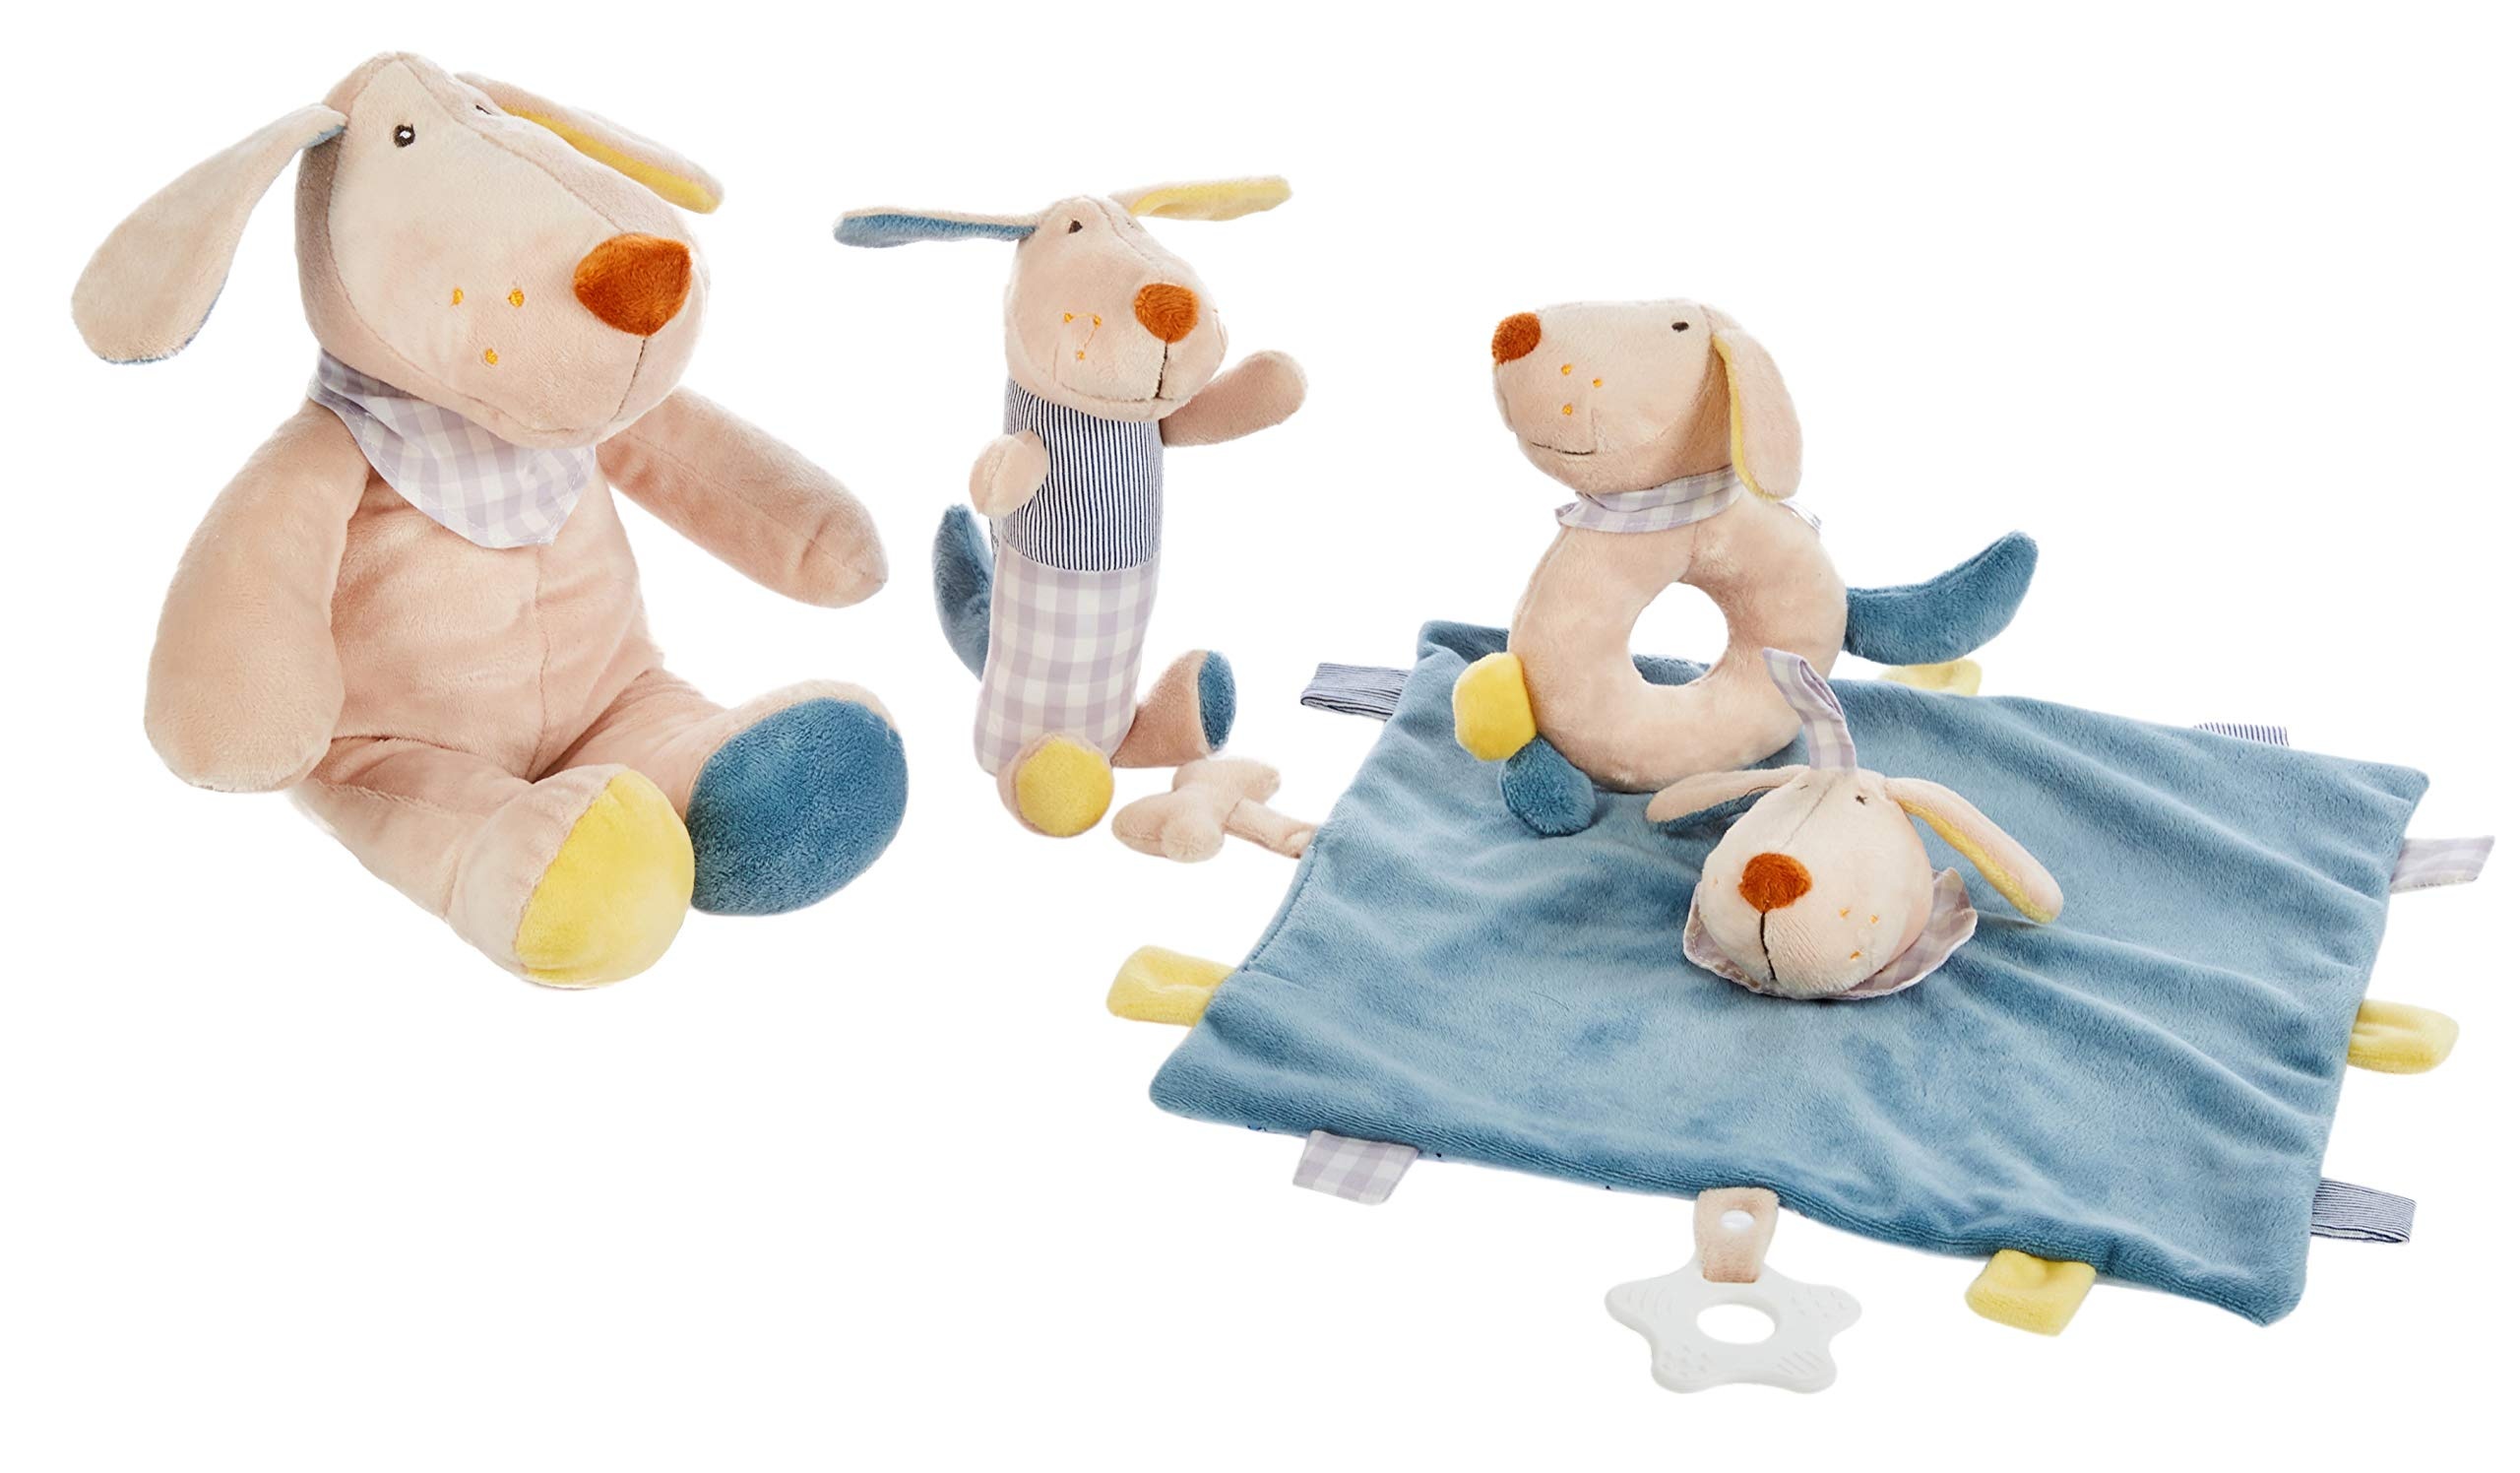 Baby Brielle 4 Piece Dog Plush Toy Security Lovies with Teethers and Rattles + Greeting Card Gift Set for Babies, Blue